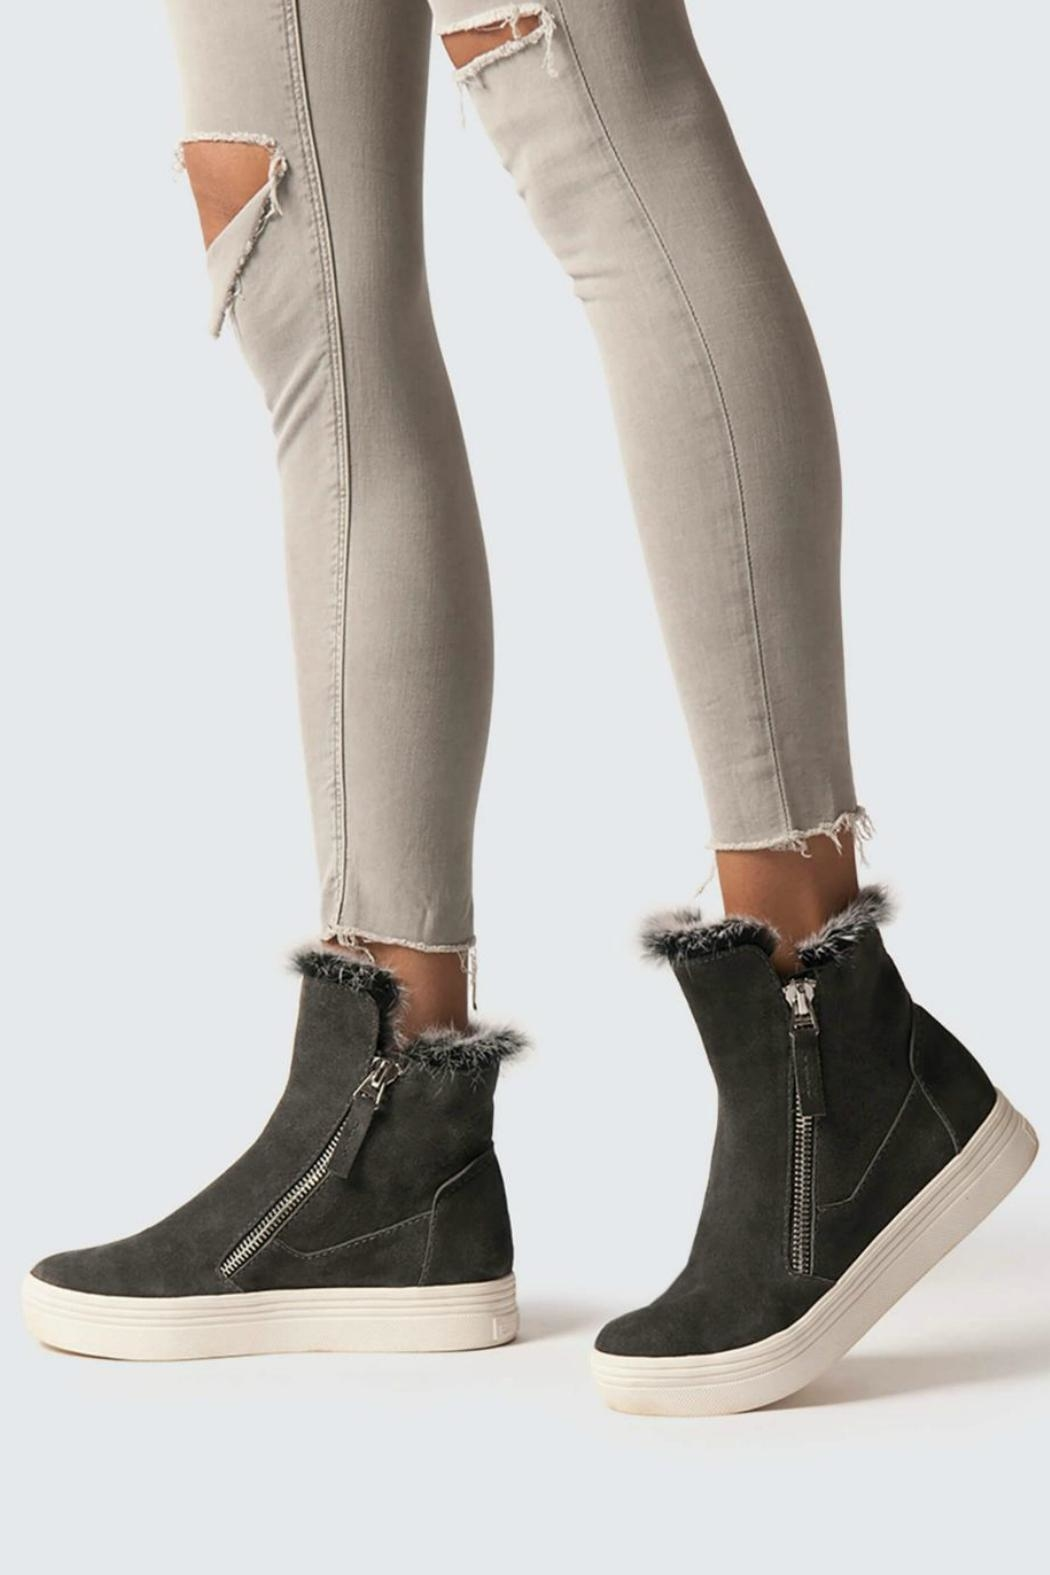 Dolce Vita Tulli Bootie Sneakers - Front Full Image